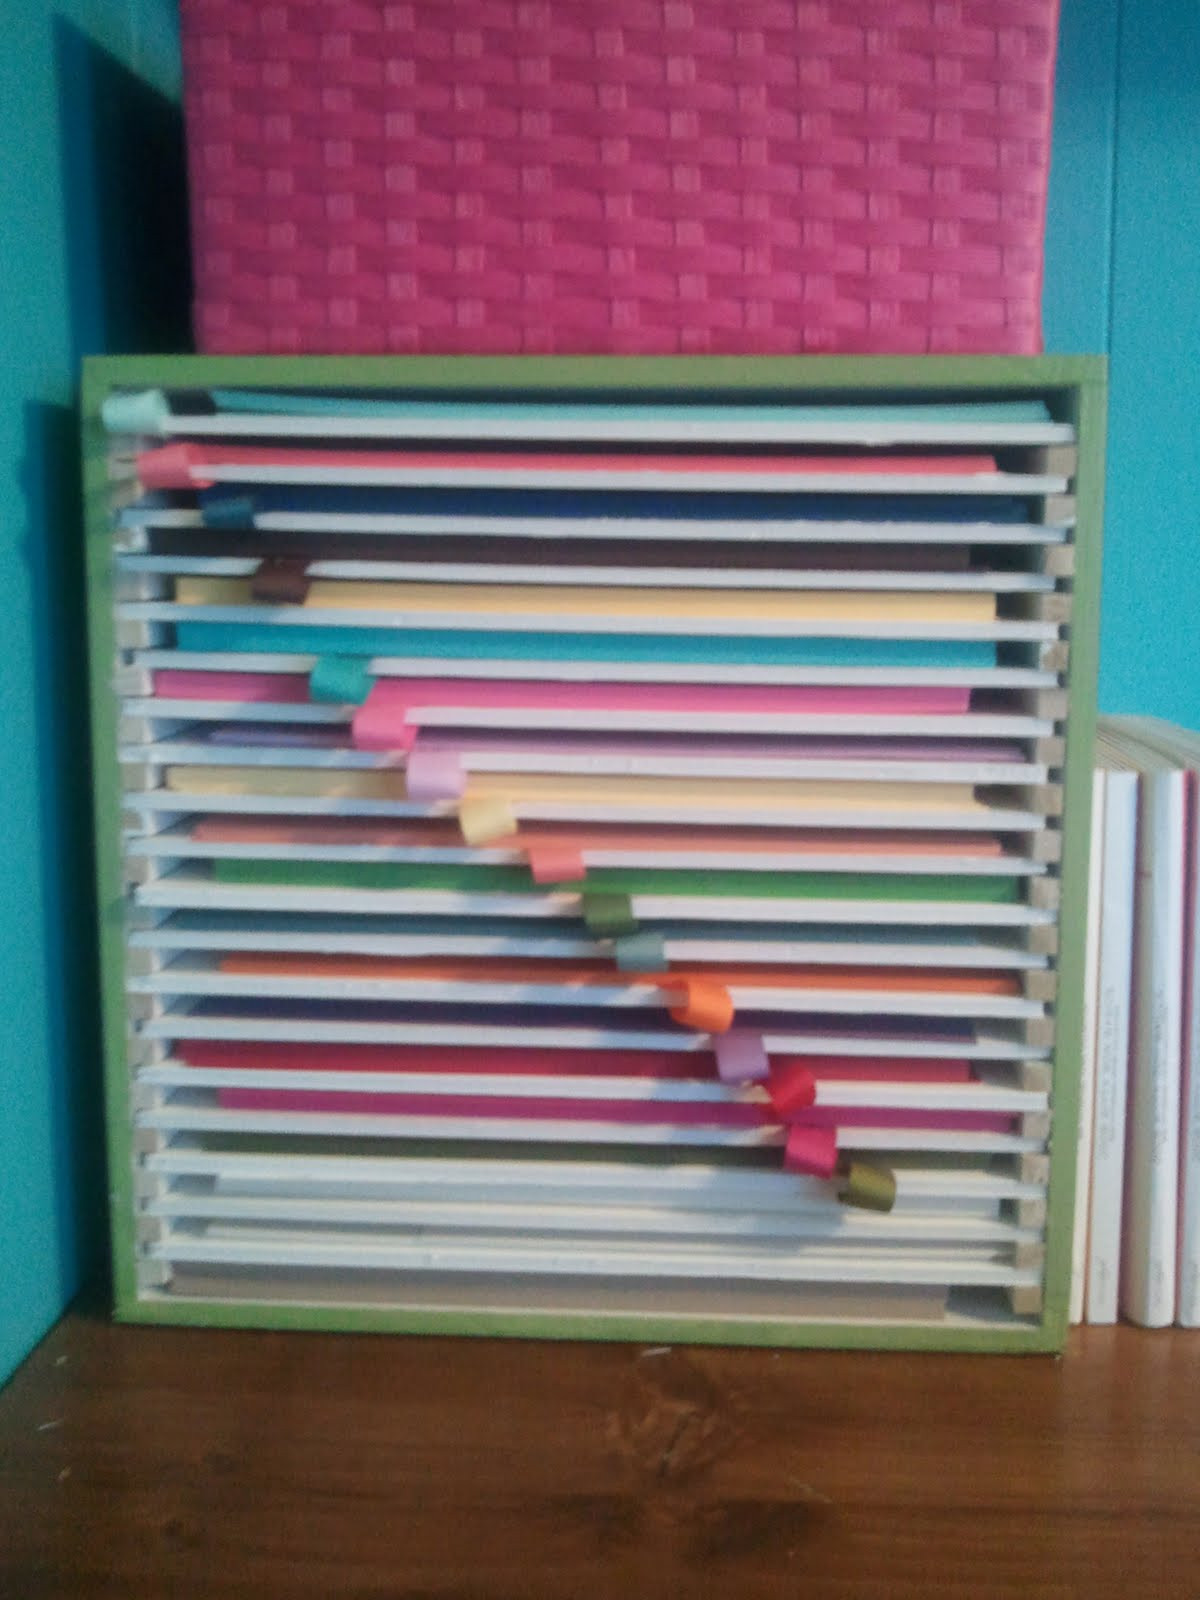 Best ideas about Paper Organizer DIY . Save or Pin CRAFTY STORAGE Amy s Awesome Paper Storage Idea Now.